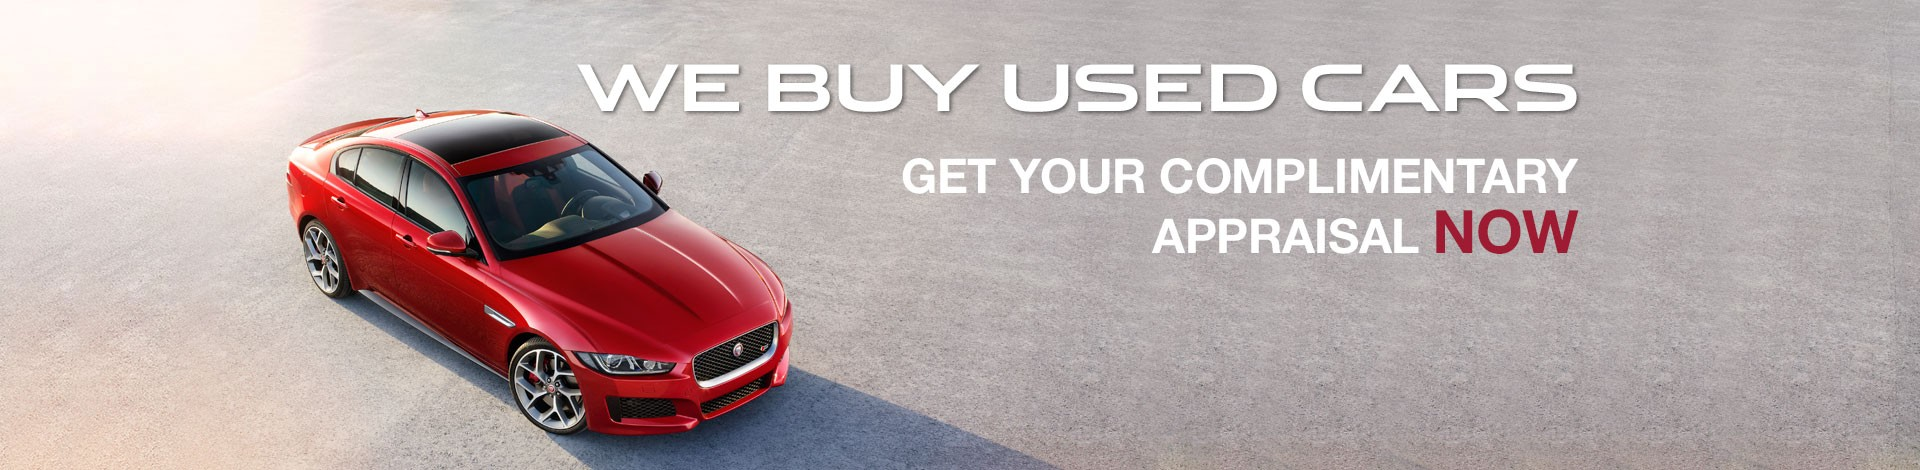 We Buy Cars - Get your complimentary appraisal now